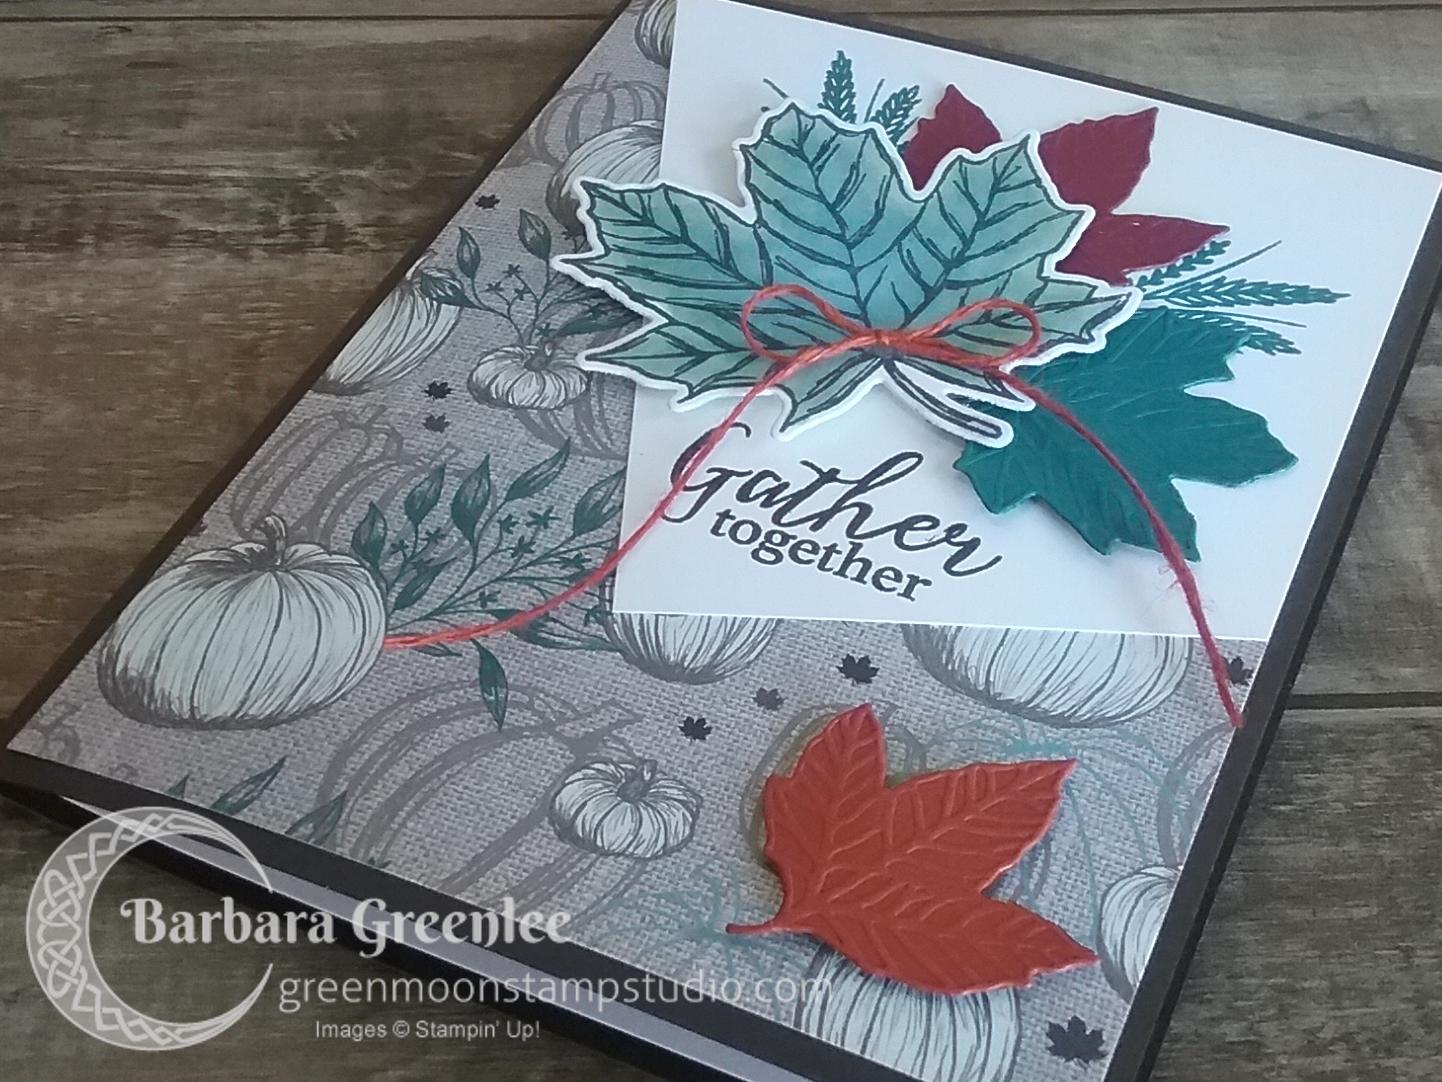 The Come To Gather Designer Series Paper has several versatile designs, but my favorite sheet is this neutral pumpkin piece. I designed a Fall card for my club using it and the Gather Together stamp set.